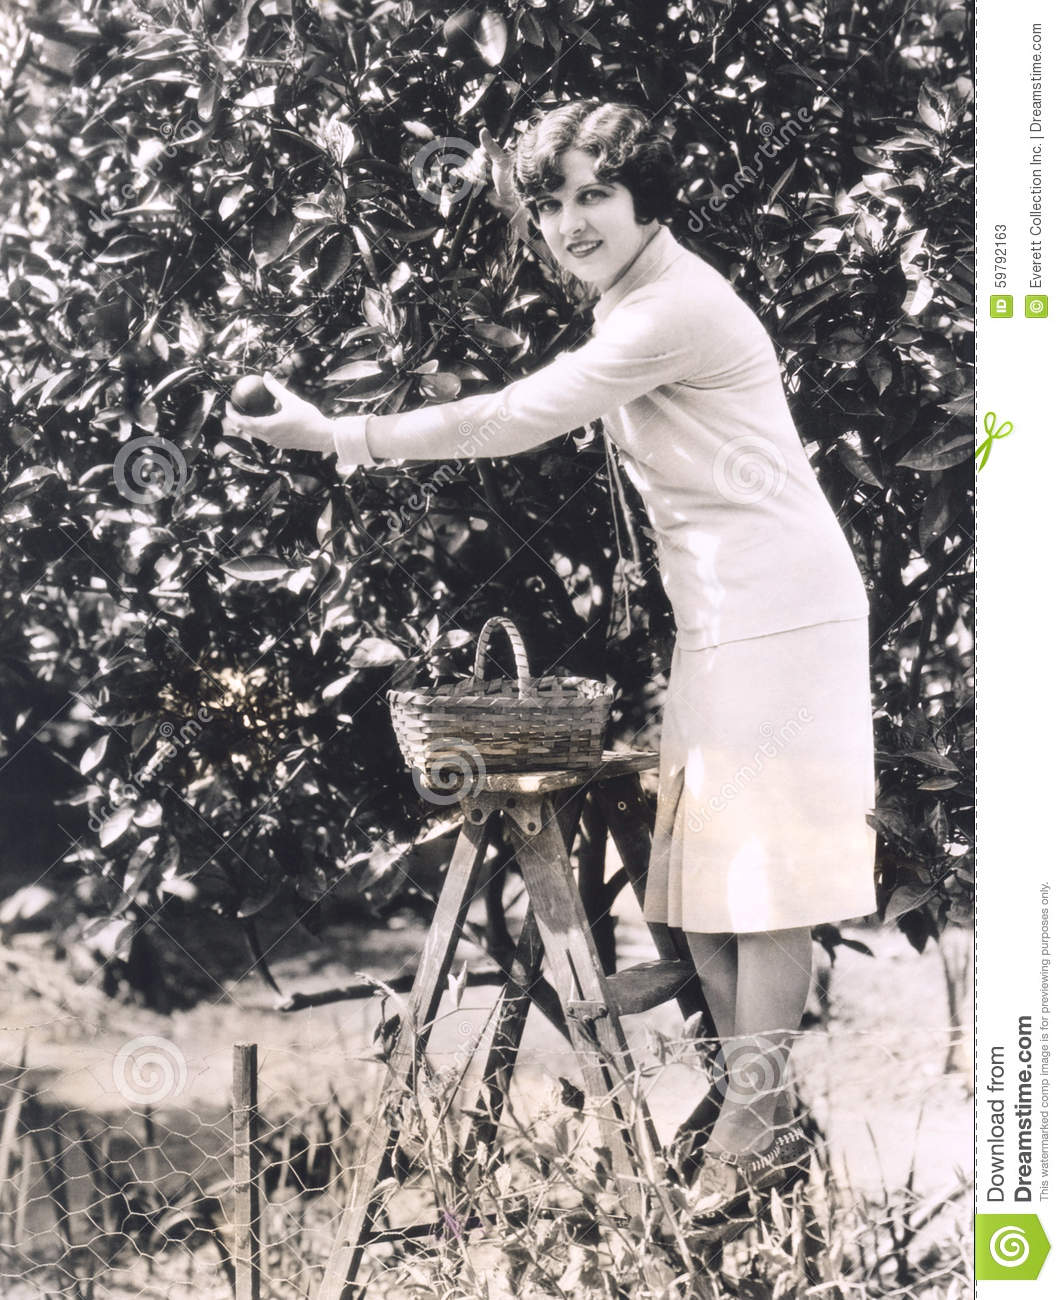 Woman picking oranges from a tree